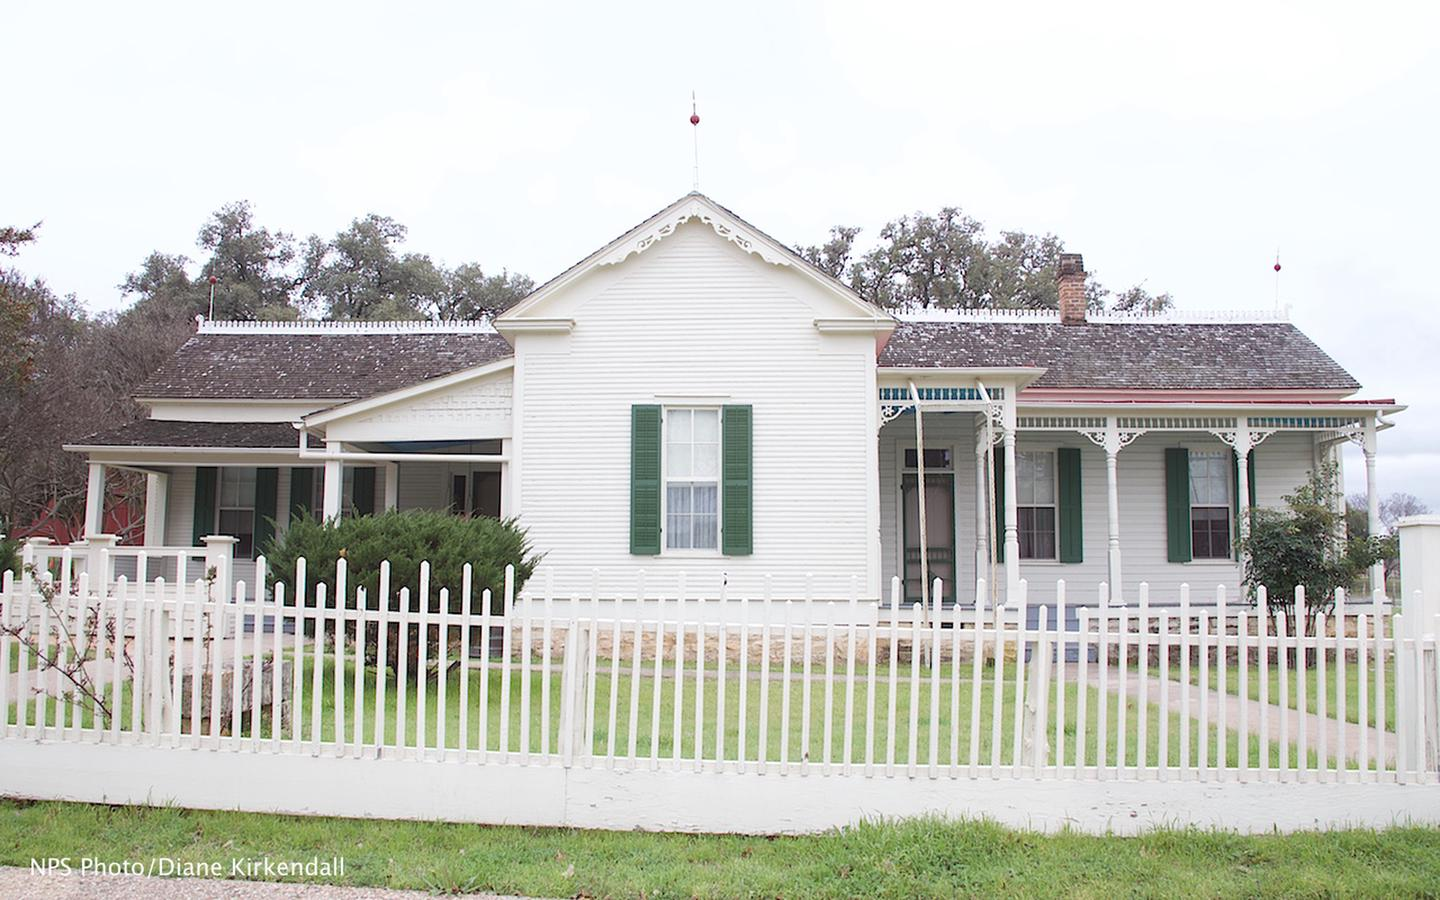 Boyhood HomeLyndon Johnson was 5 years old when he moved to this home with his family. His childhood in a small rural town had great impact on his futur.